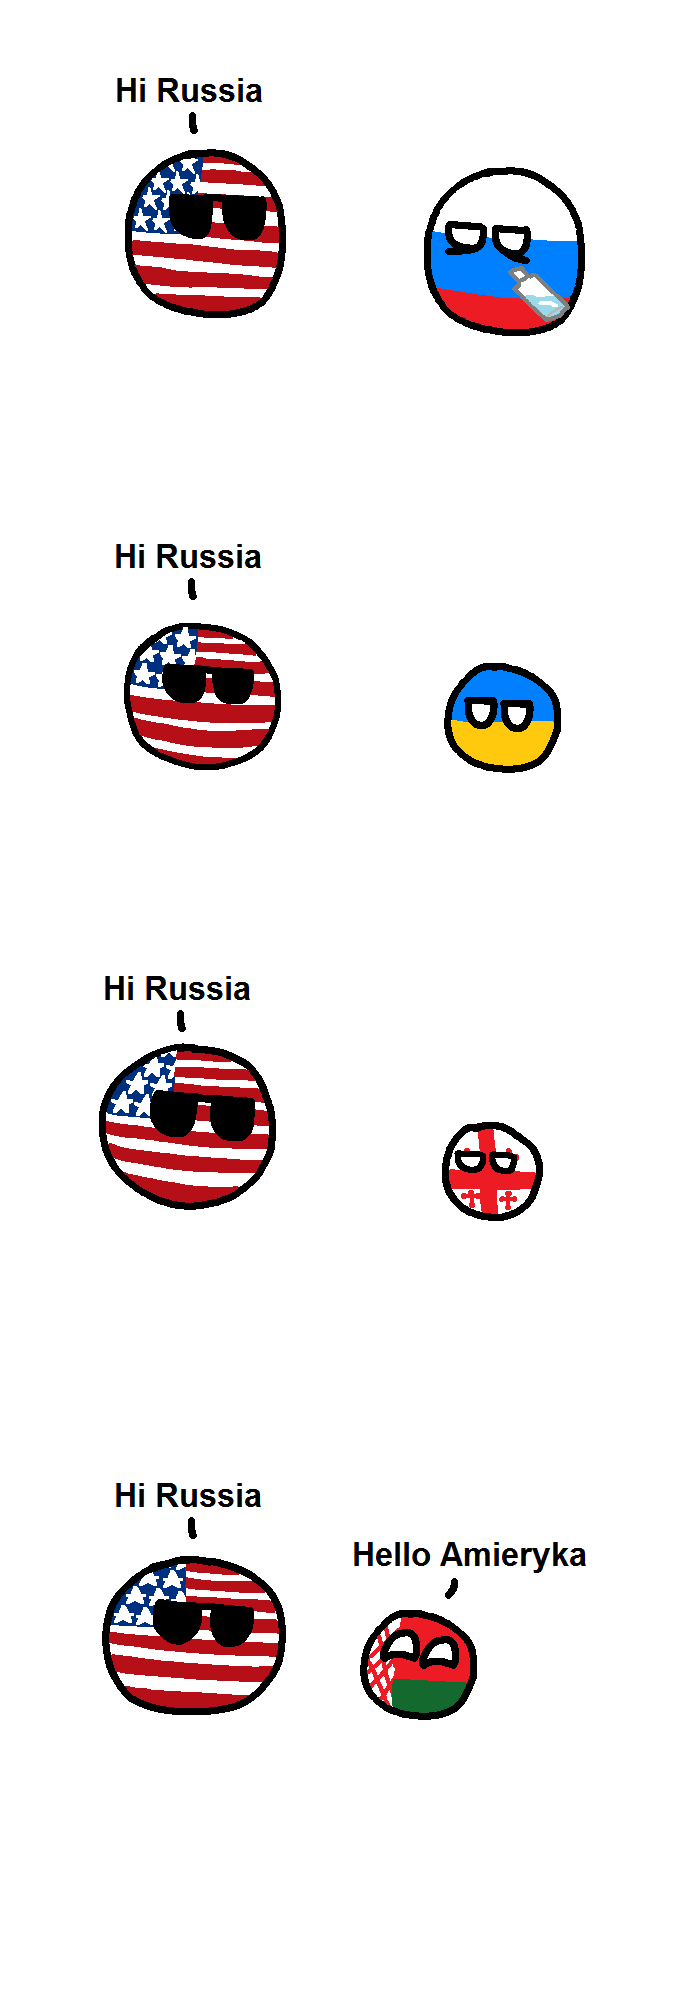 A comic about Slavic countries